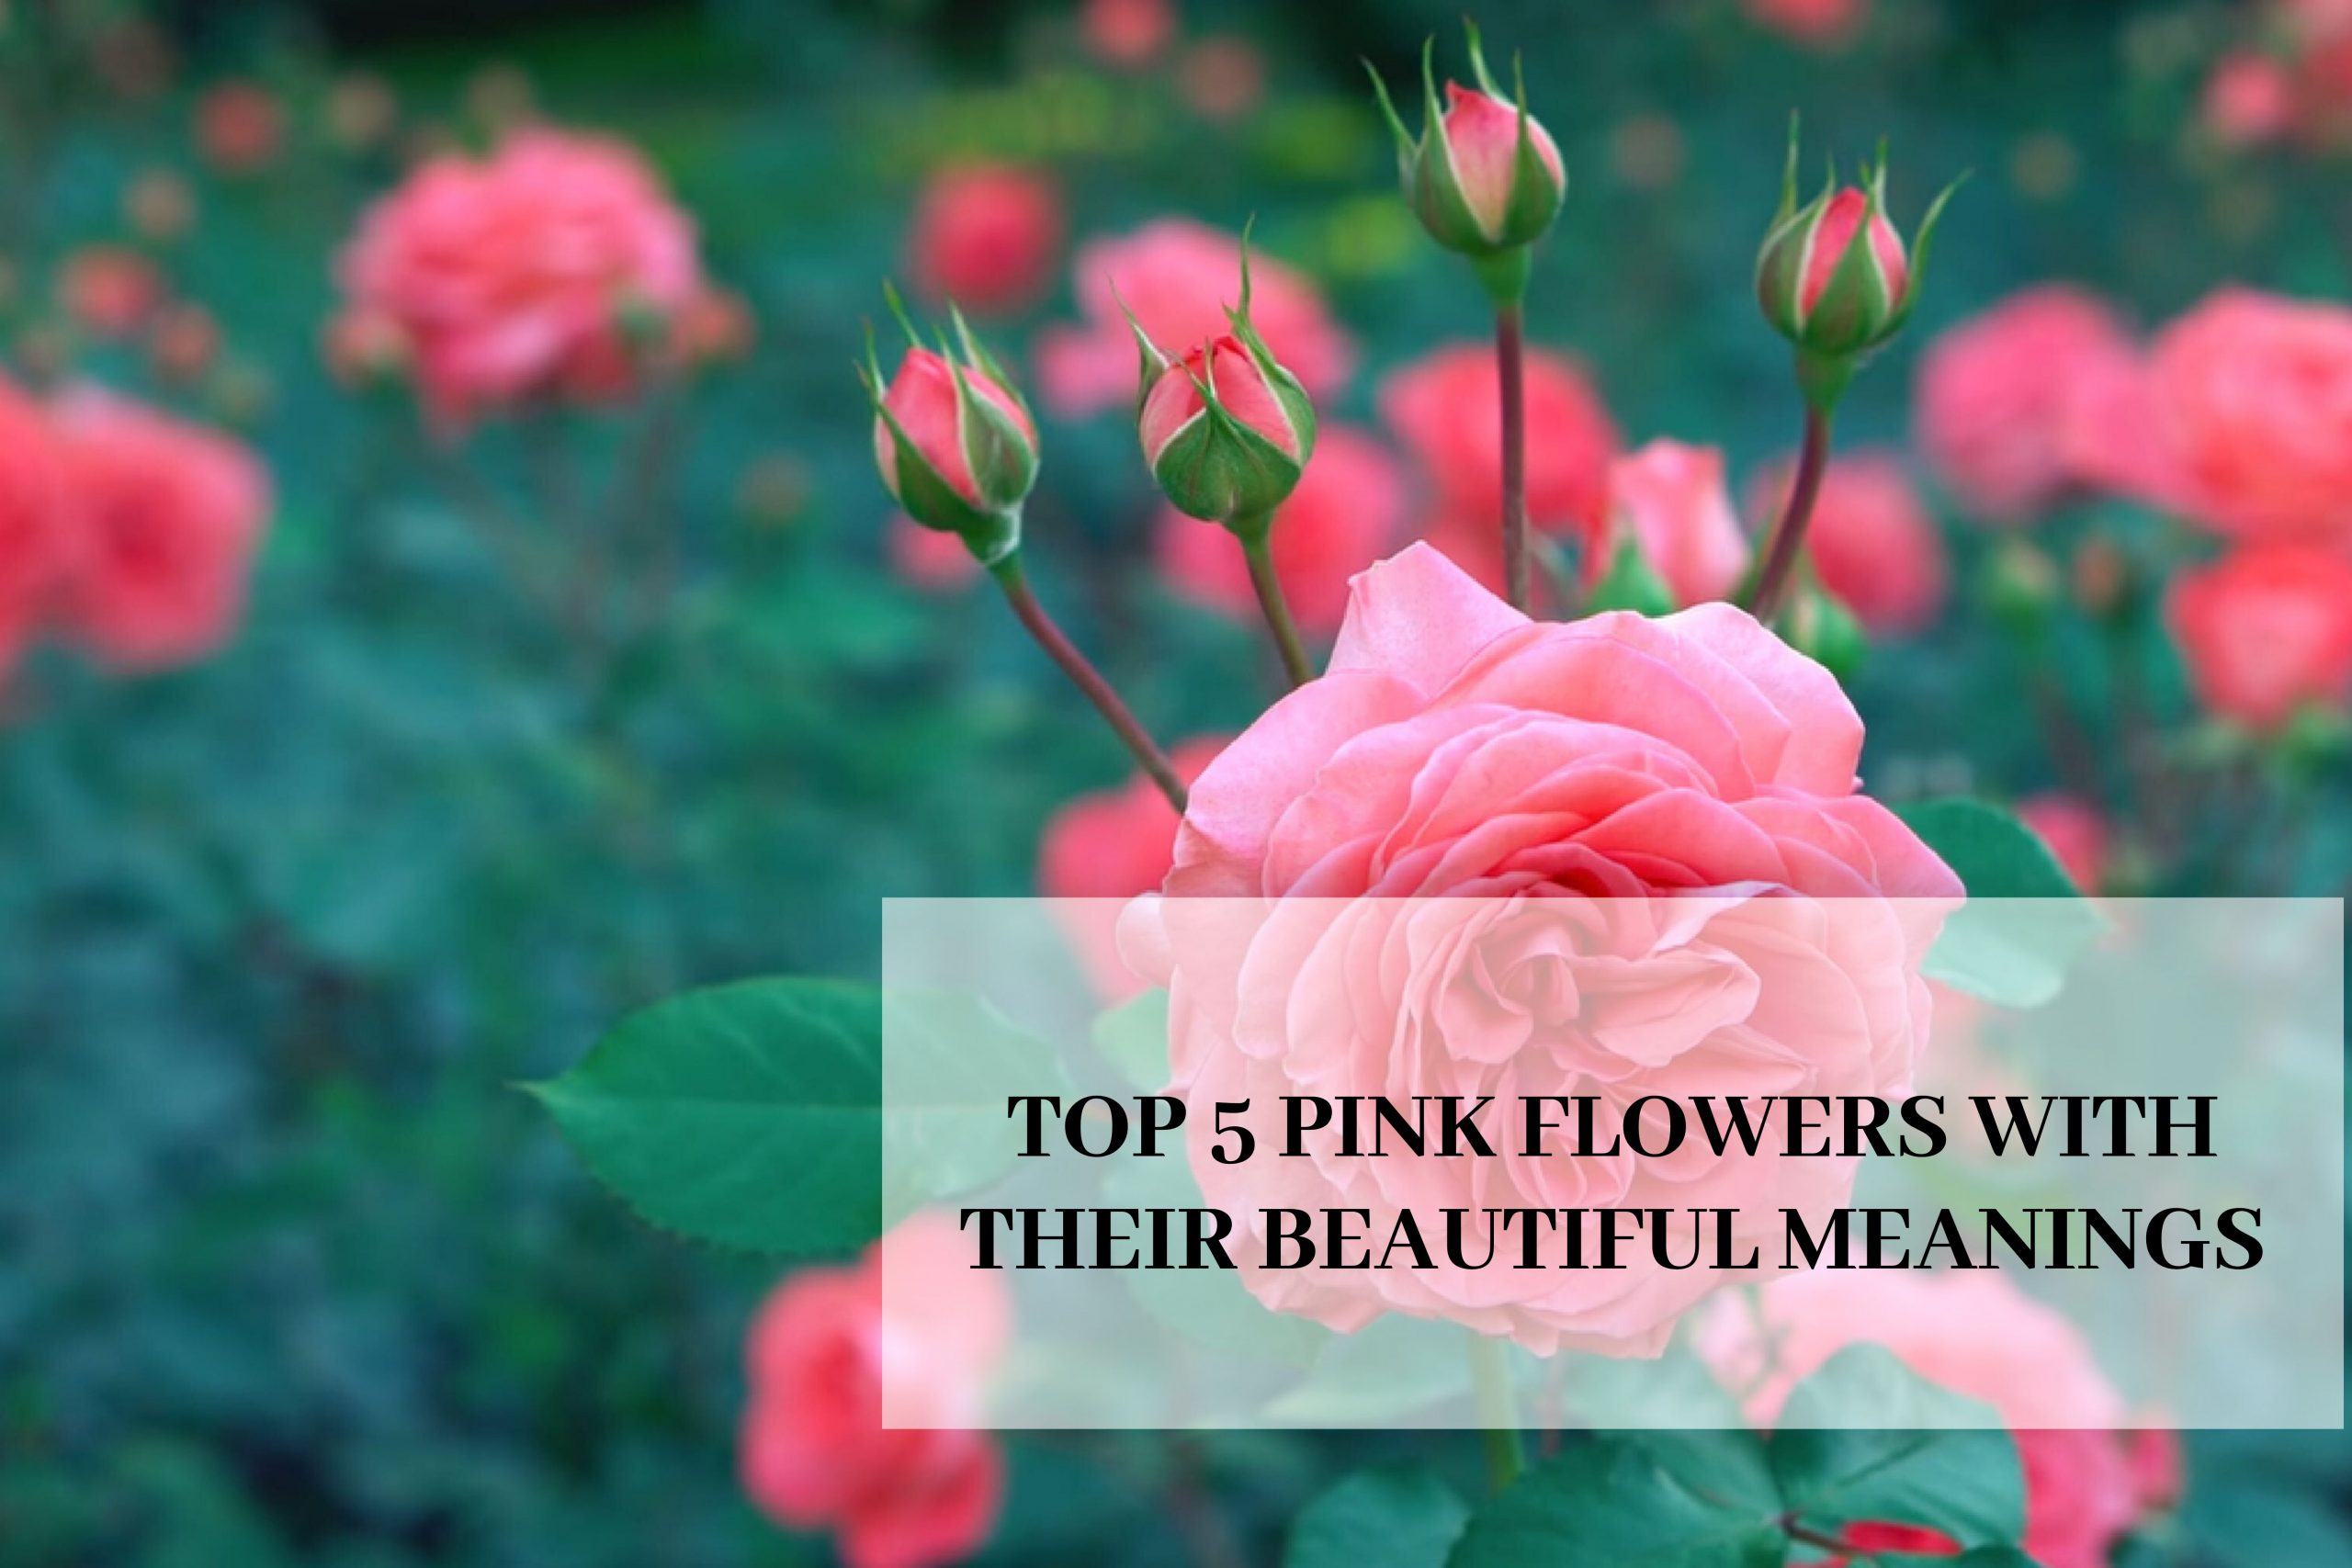 Top 5 Pink Flowers with their Beautiful Meanings